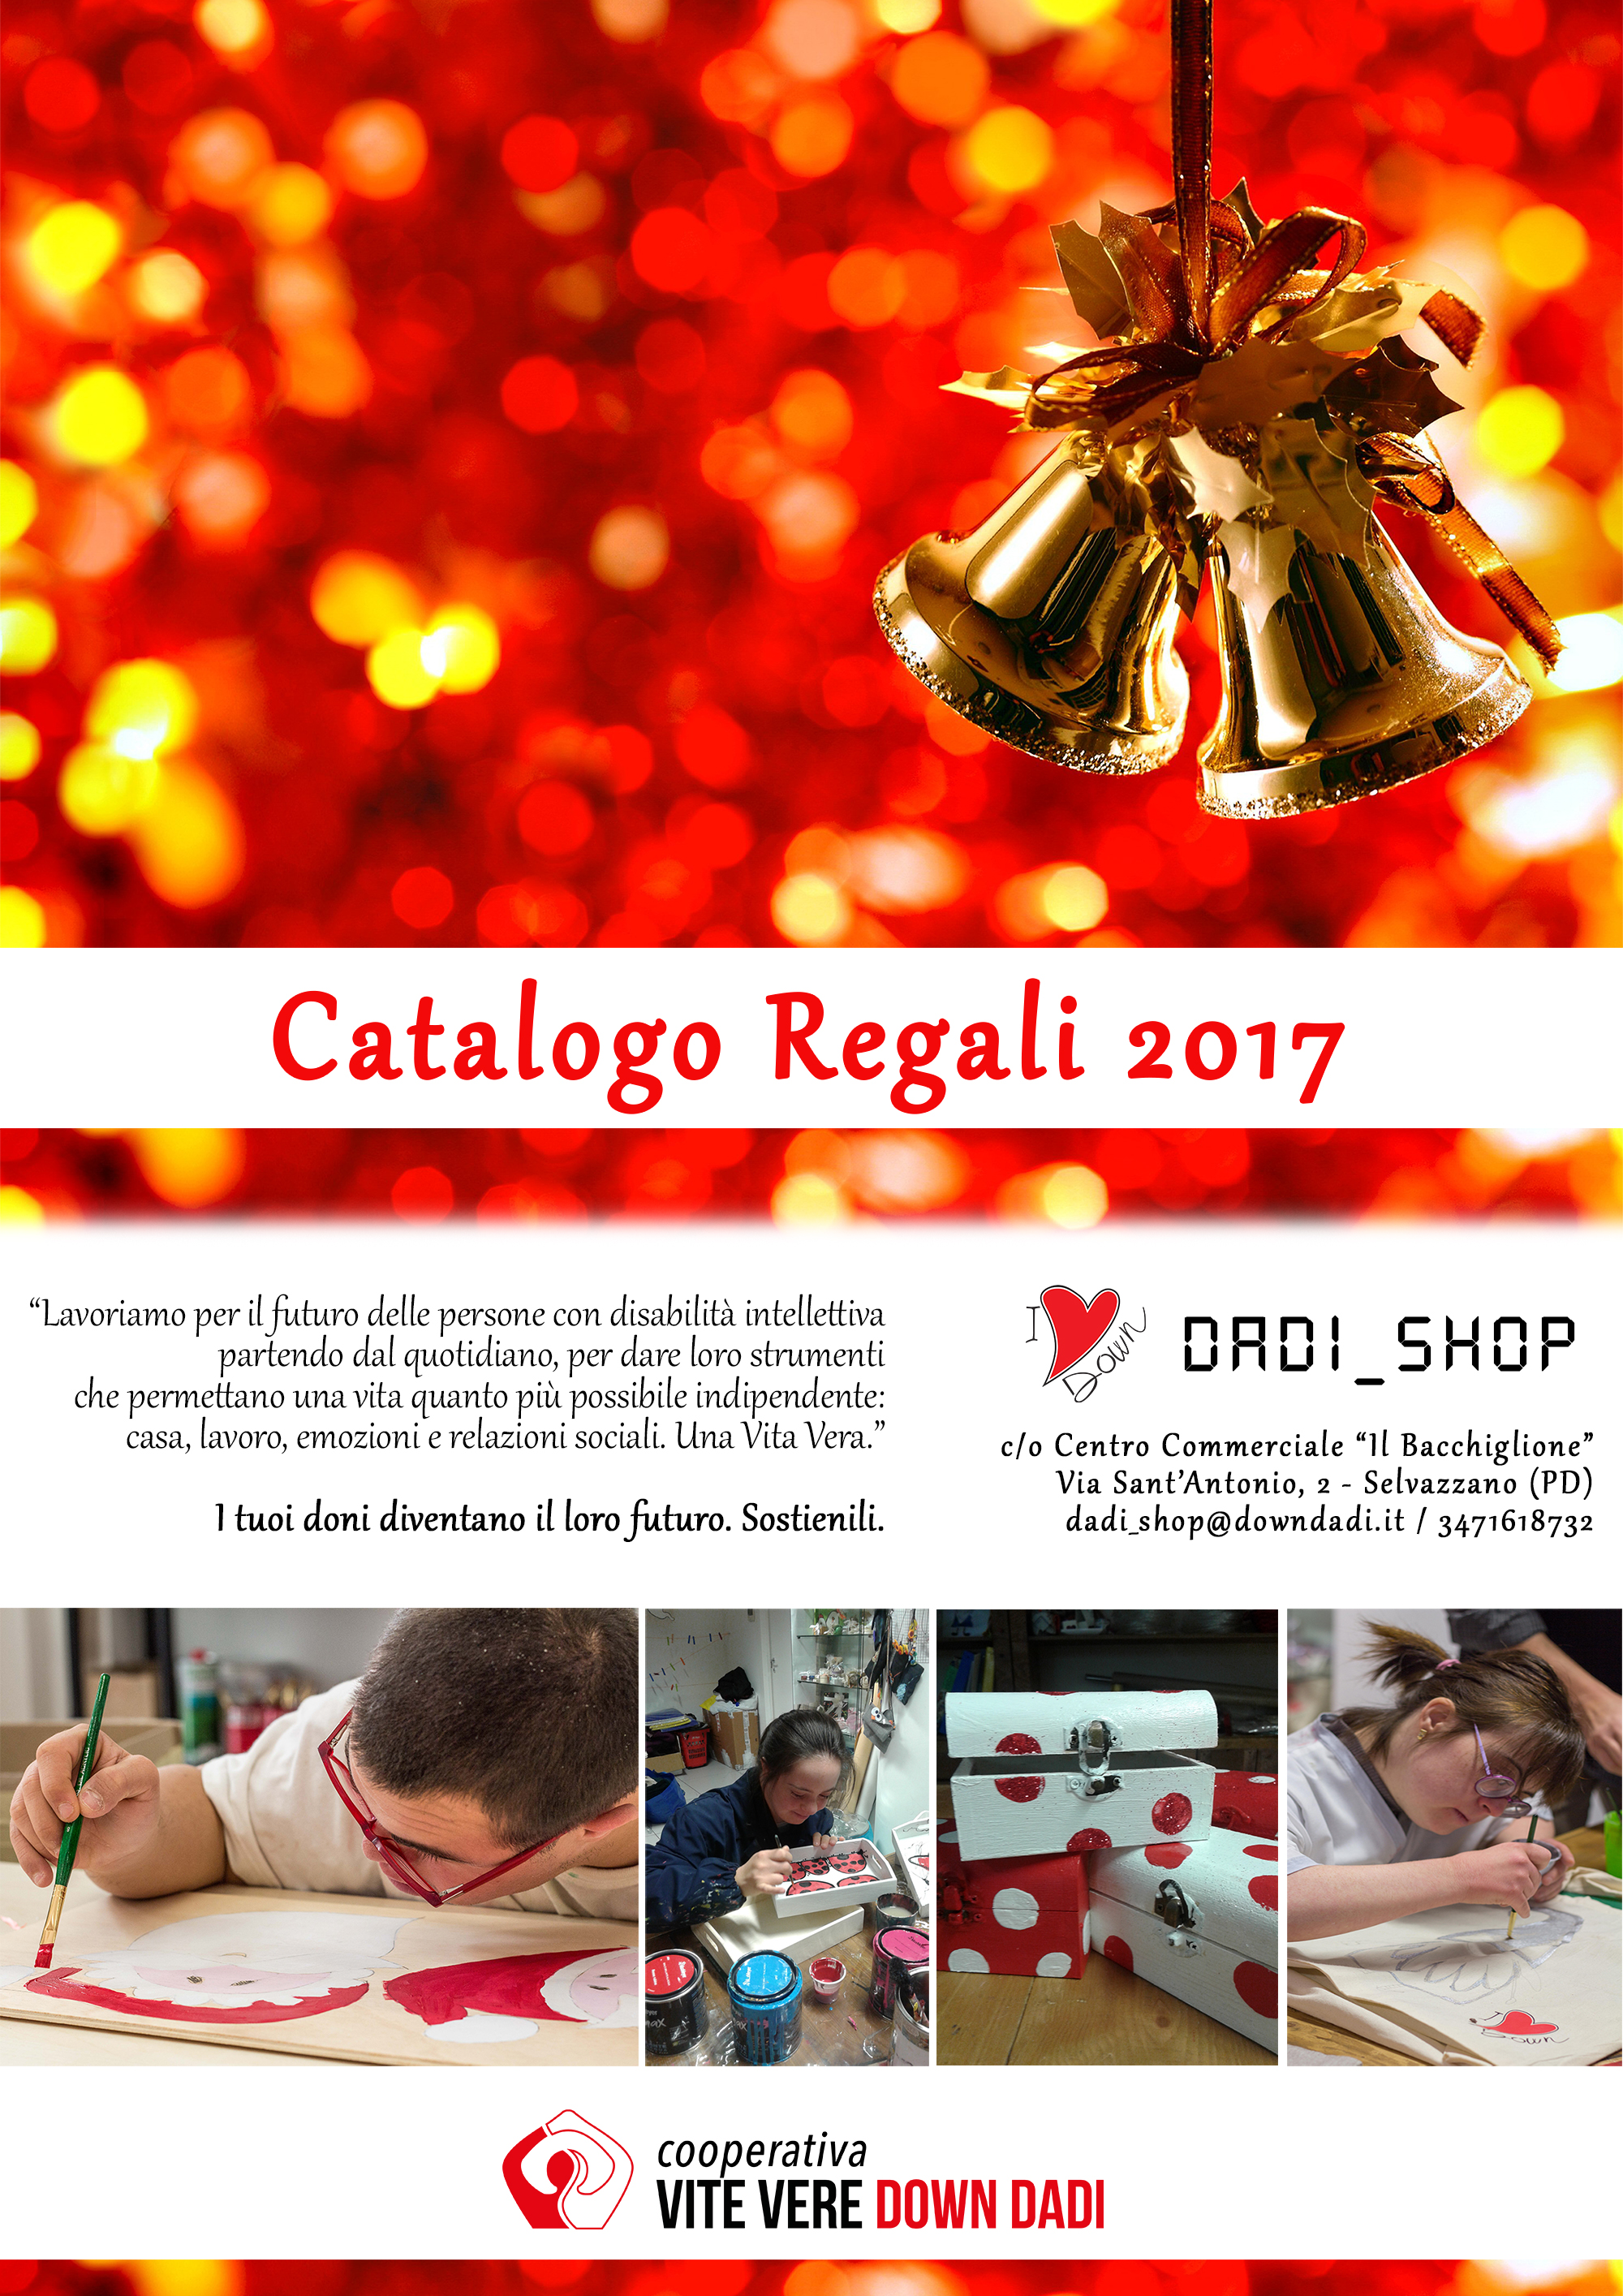 Catalogo di Natale DADI_Shop 2017